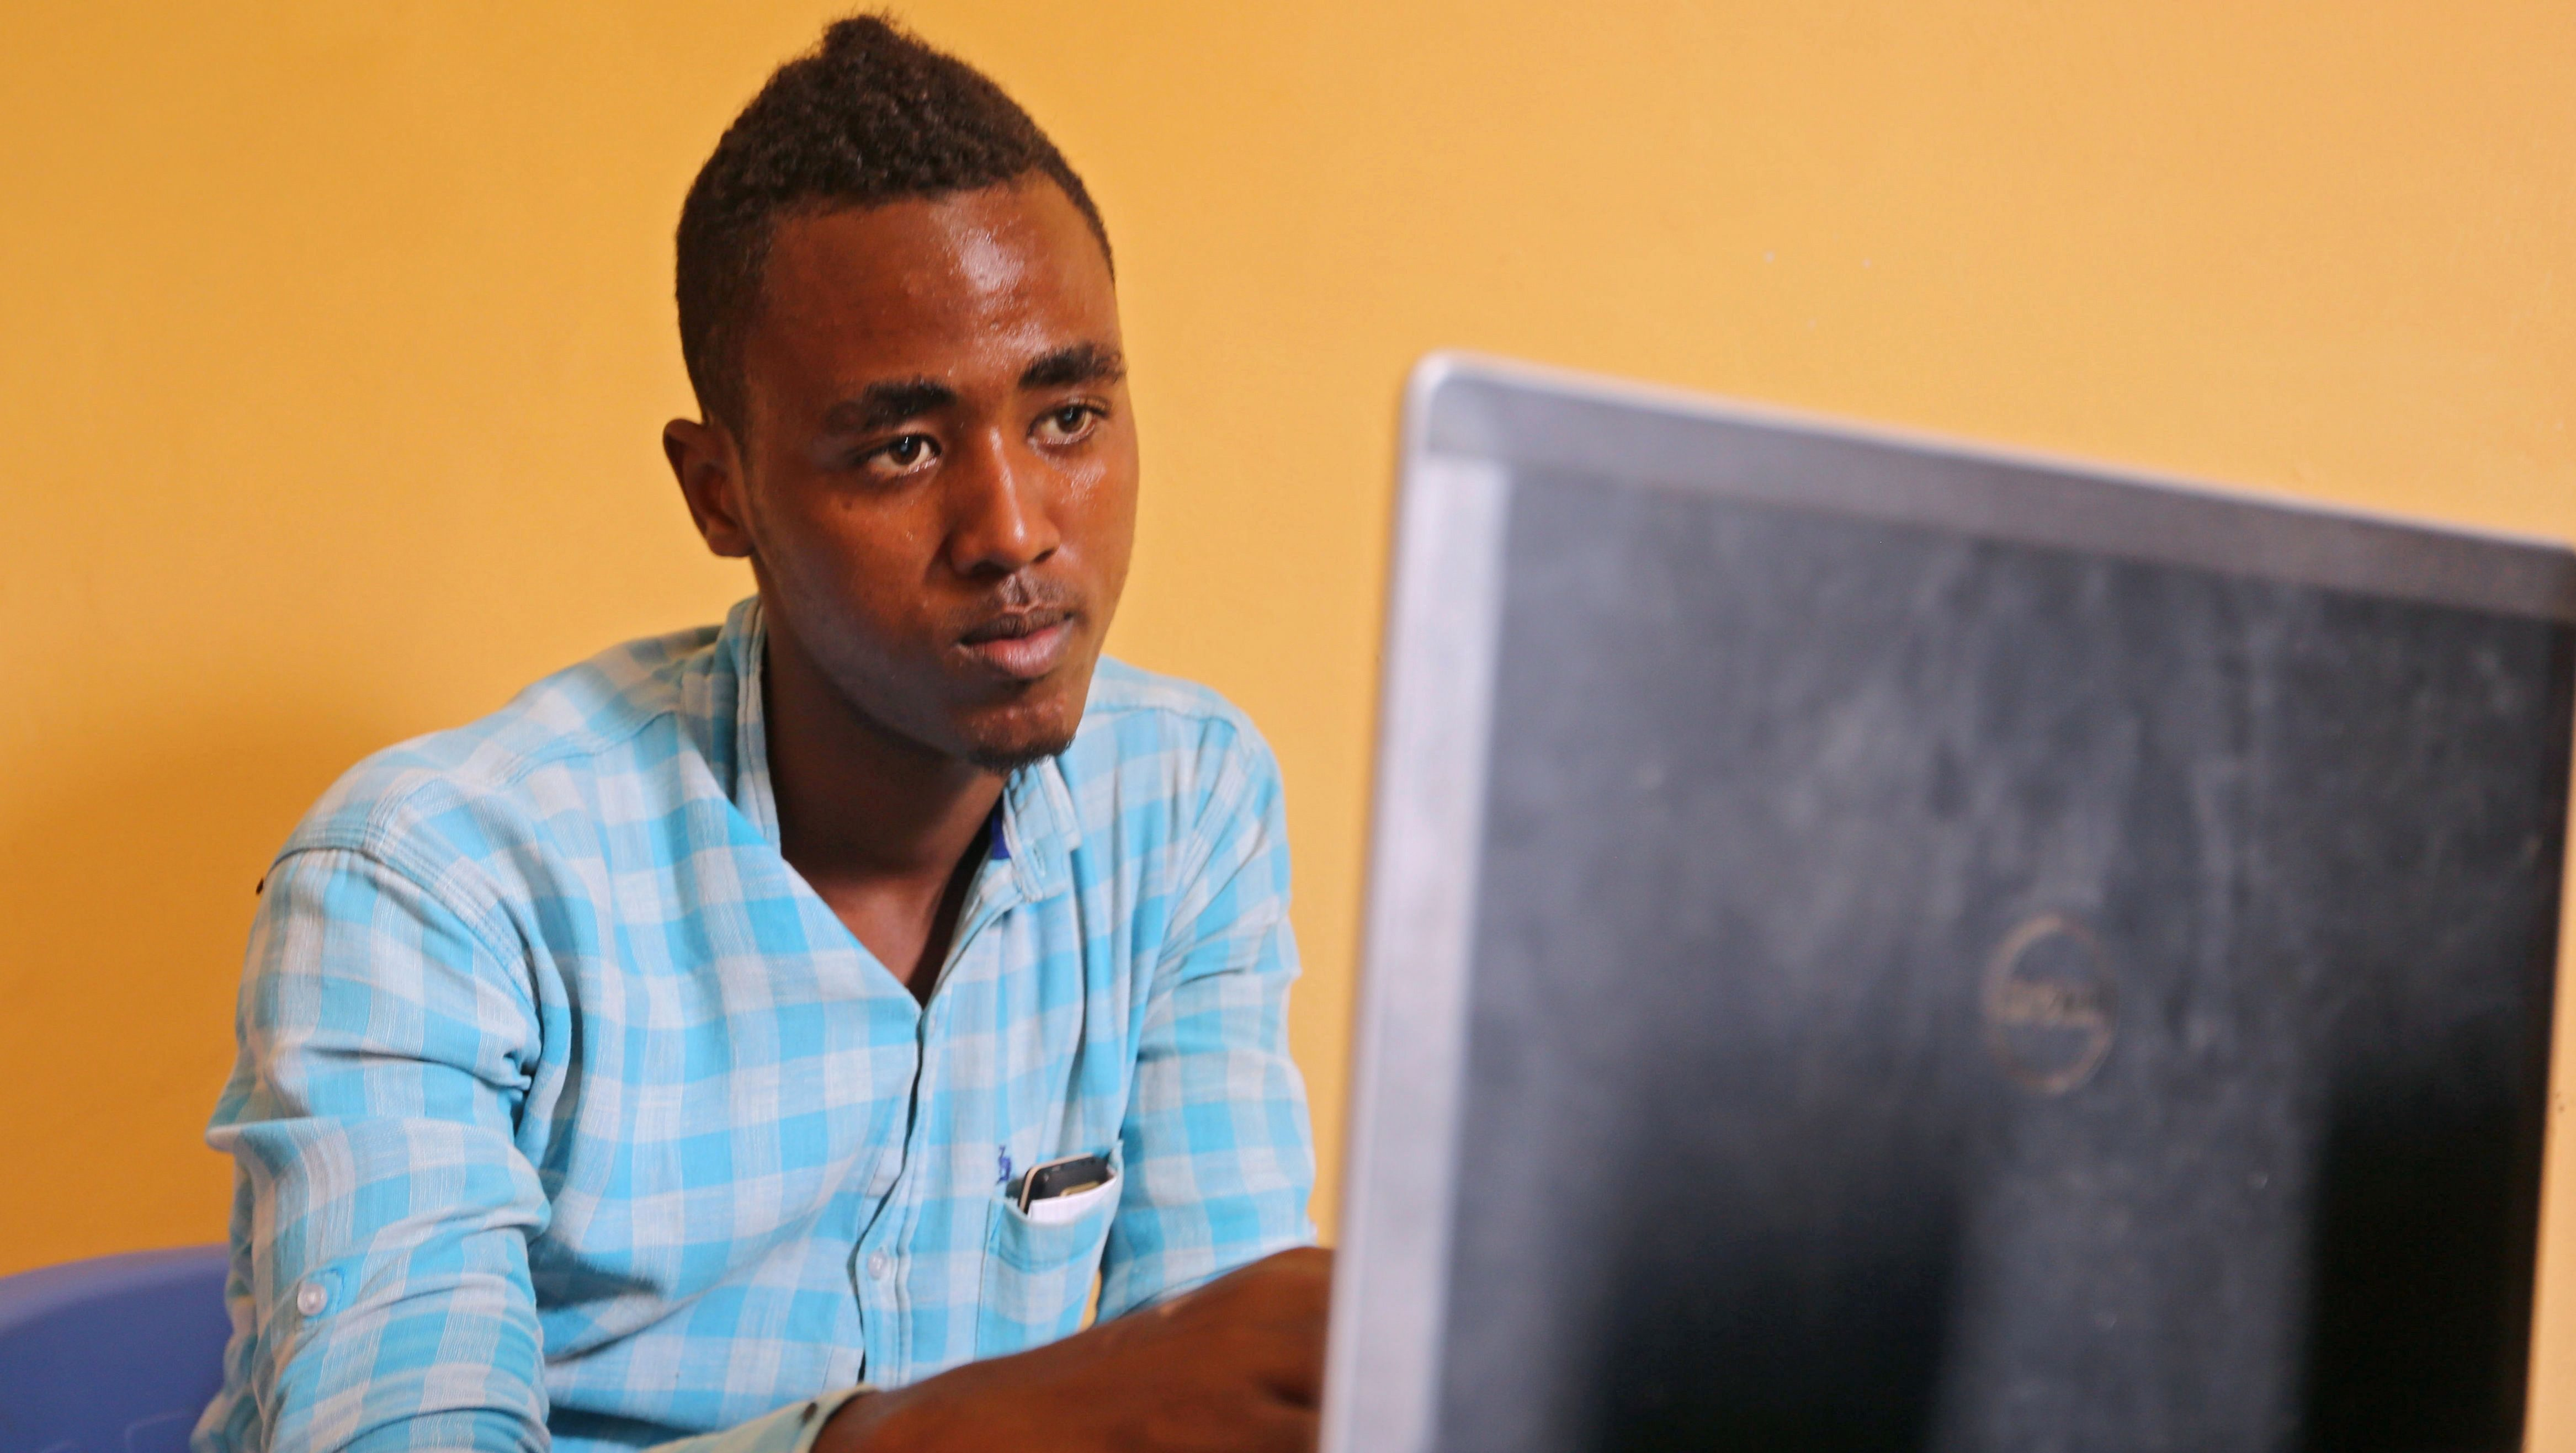 A client browses the internet at a cyber cafe in Mogadishu, Somalia July 18, 2017.